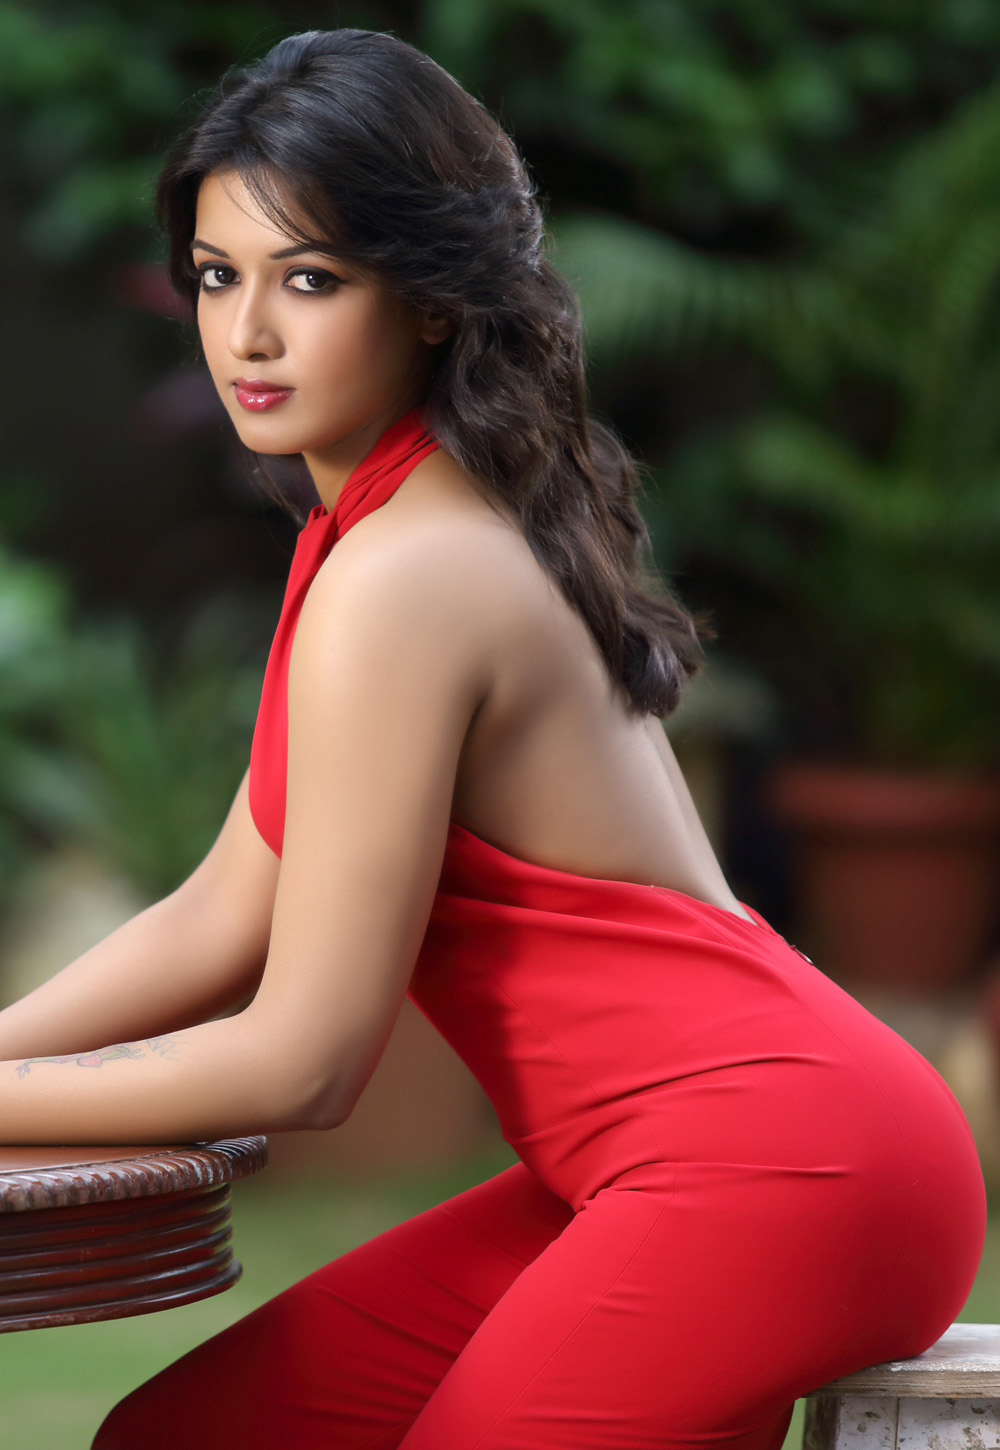 indian hot actress photos gallery | secondtofirst